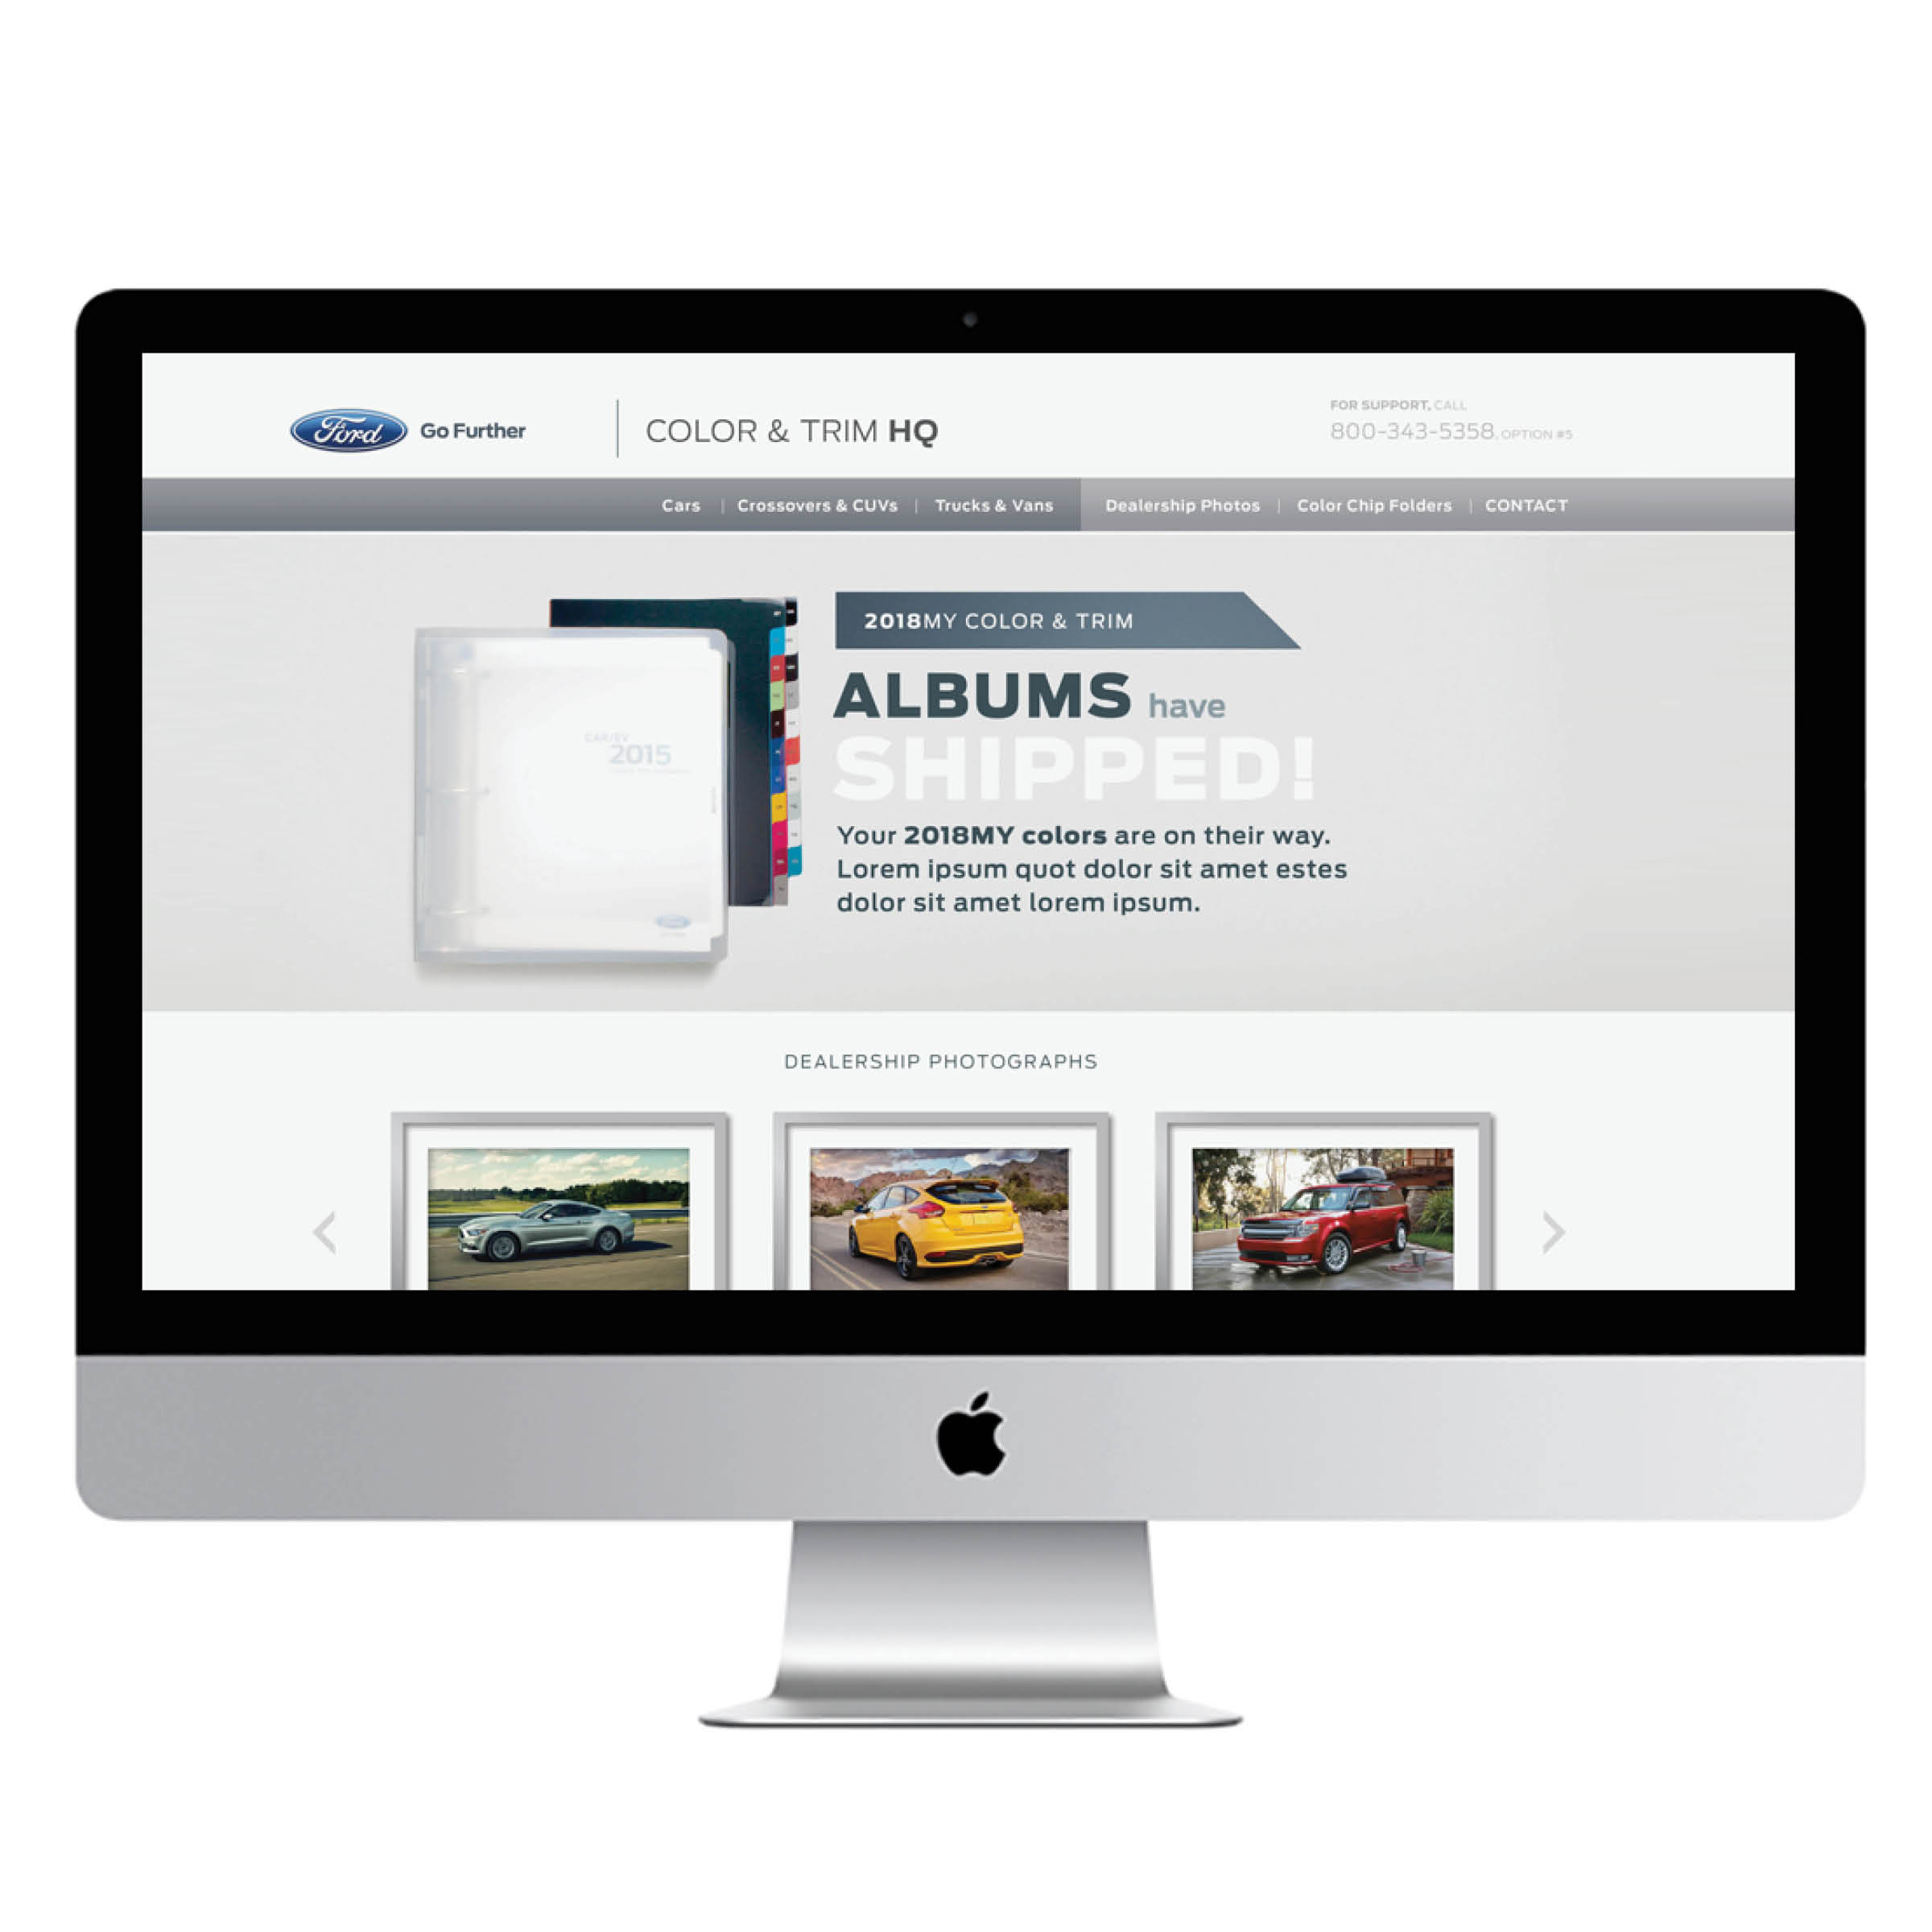 Ford Dealer Color & Trim Site   We designed the interface and UX for Ford's first-ever dealership-facing Color & Trim website. This website is accessible only by current Ford dealers, allowing them to preview the color, trim and paint options and customer-facing dealership support materials for upcoming model years.